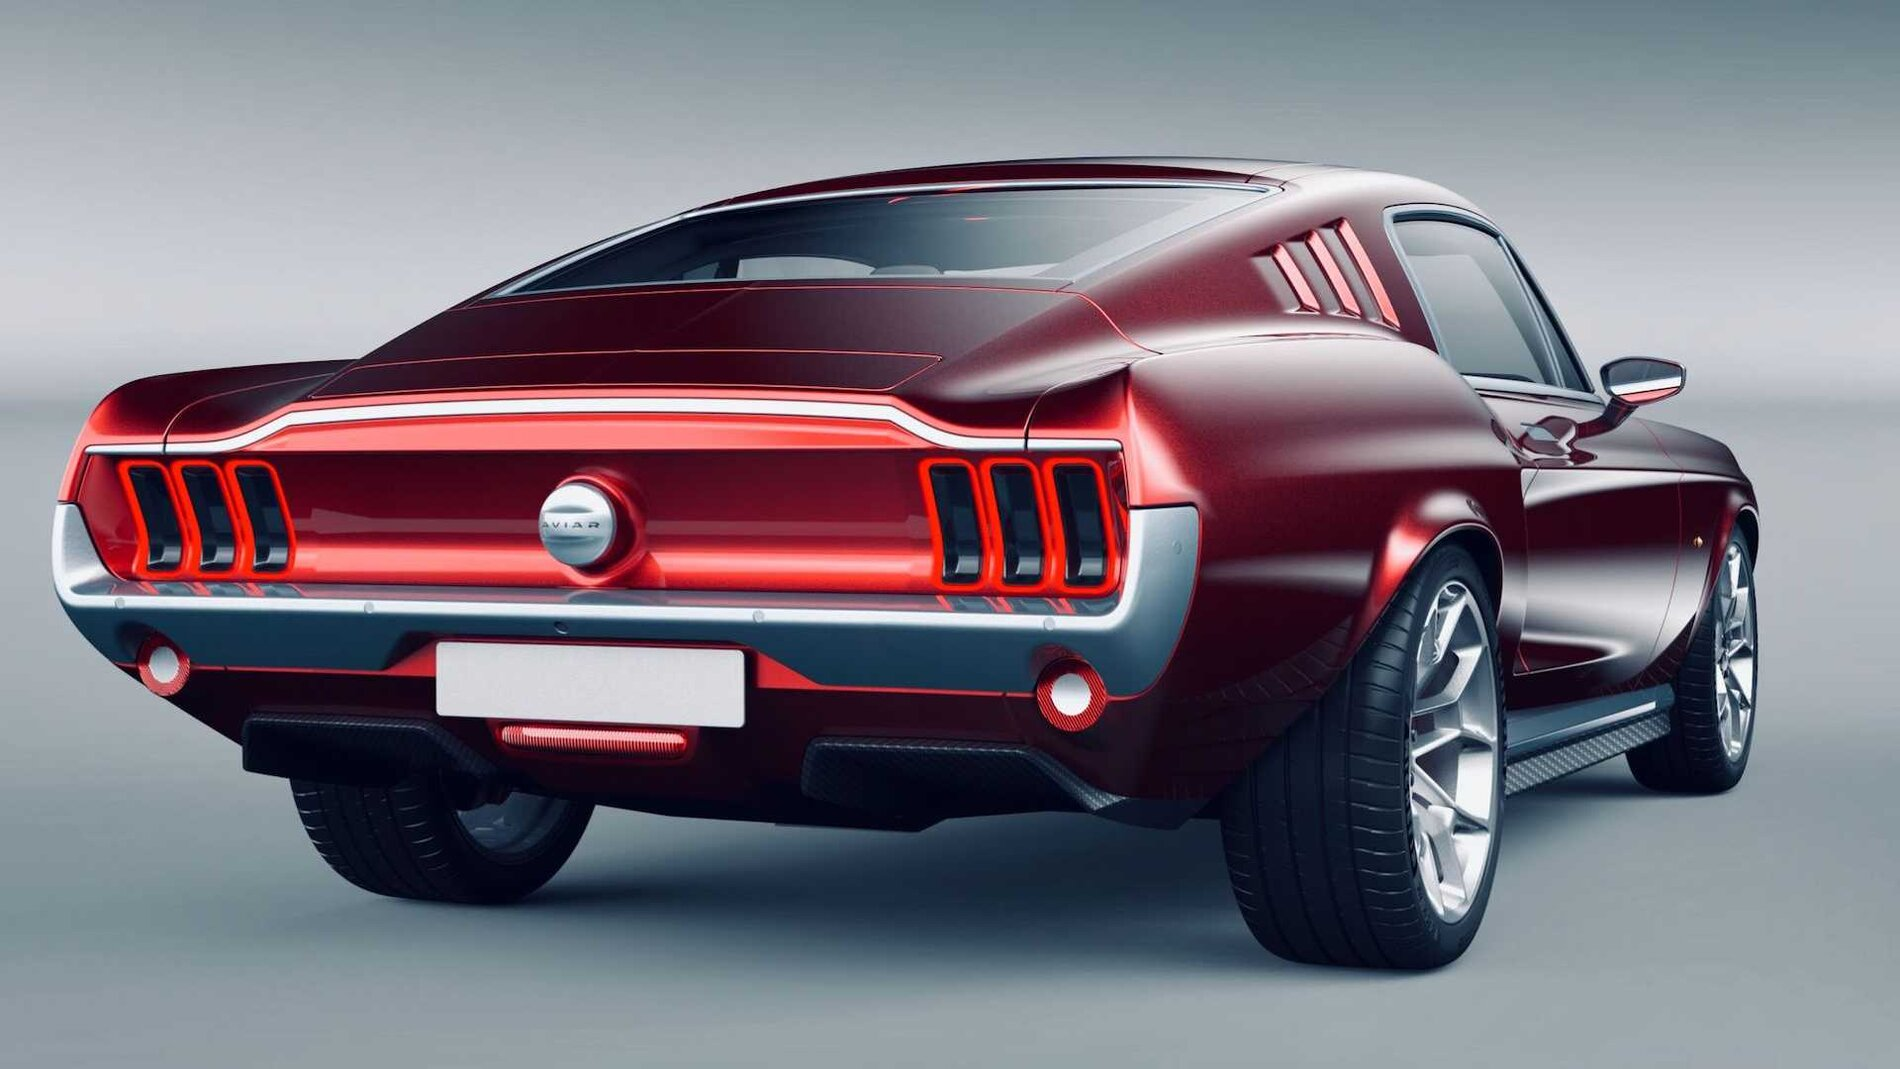 aviar-r67-all-electric-mustang-concept-rear-quarter.jpg